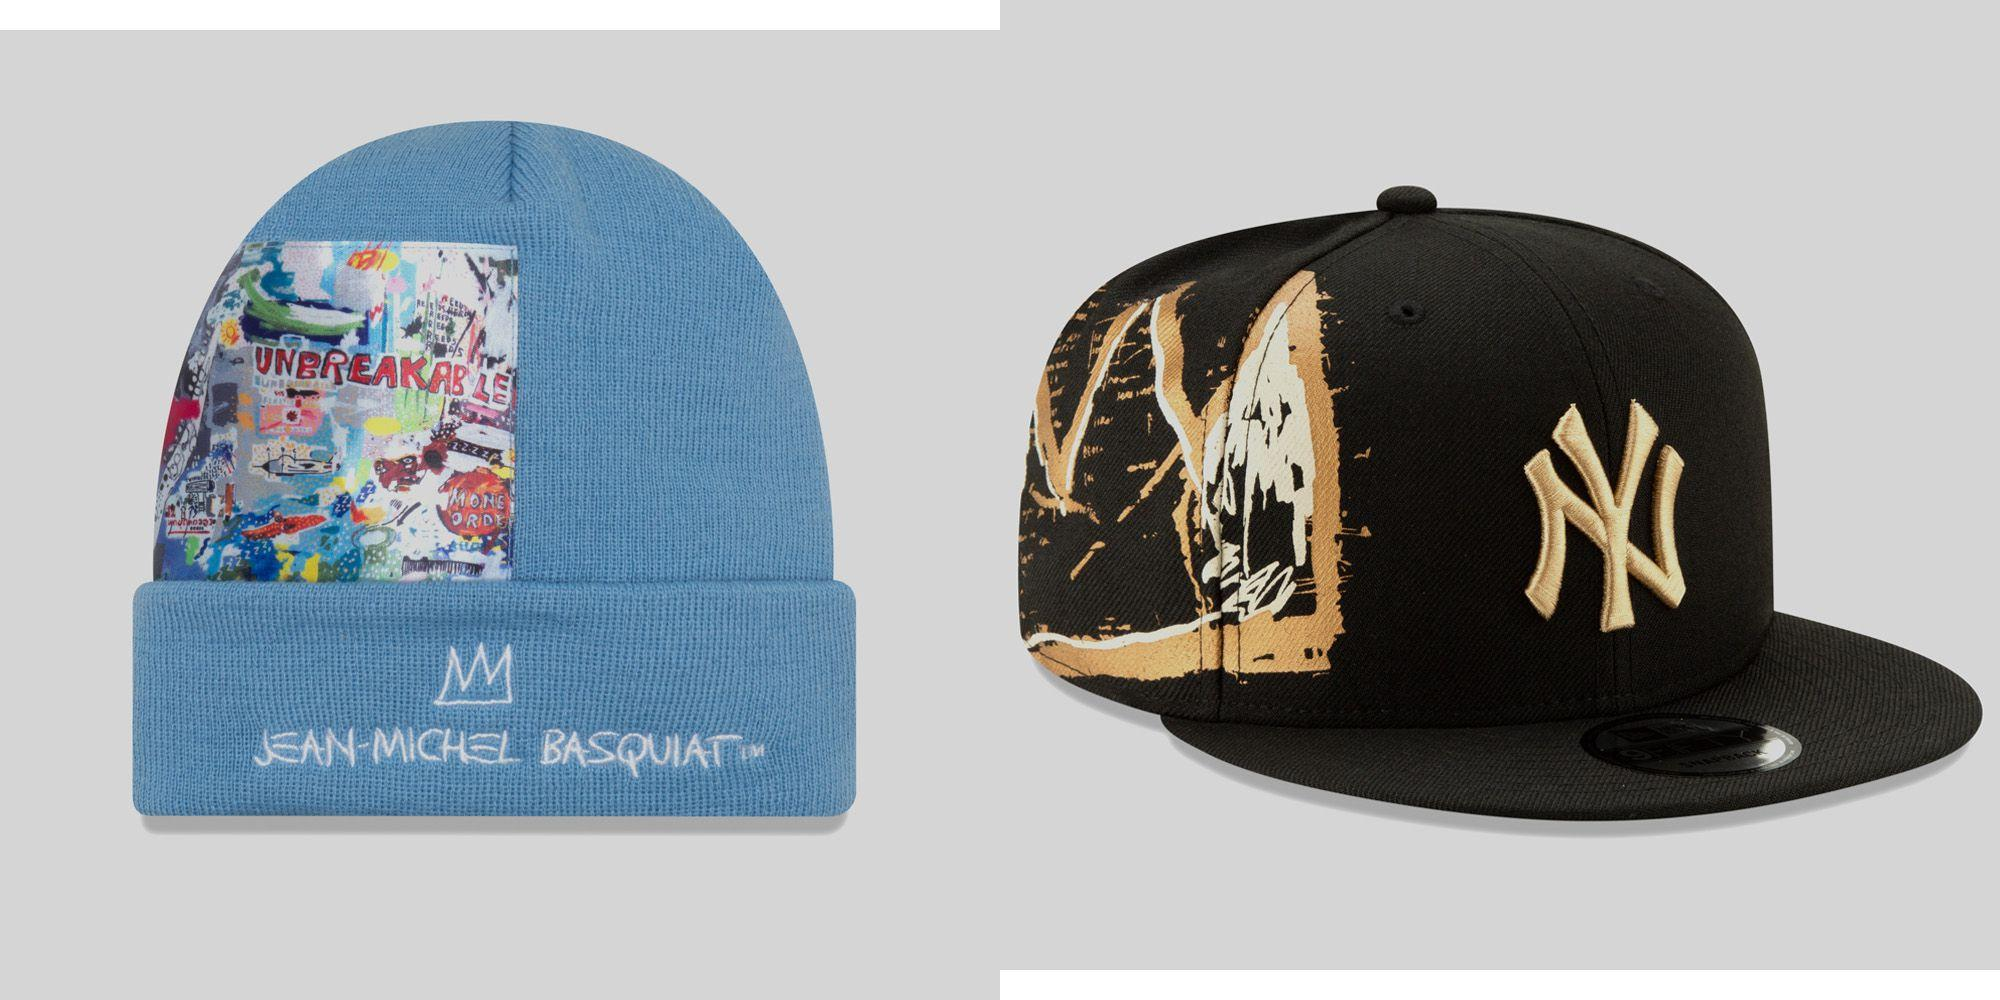 8e25880a99d An Exclusive First Look at New Era s (Very Artistic) Basquiat Hats